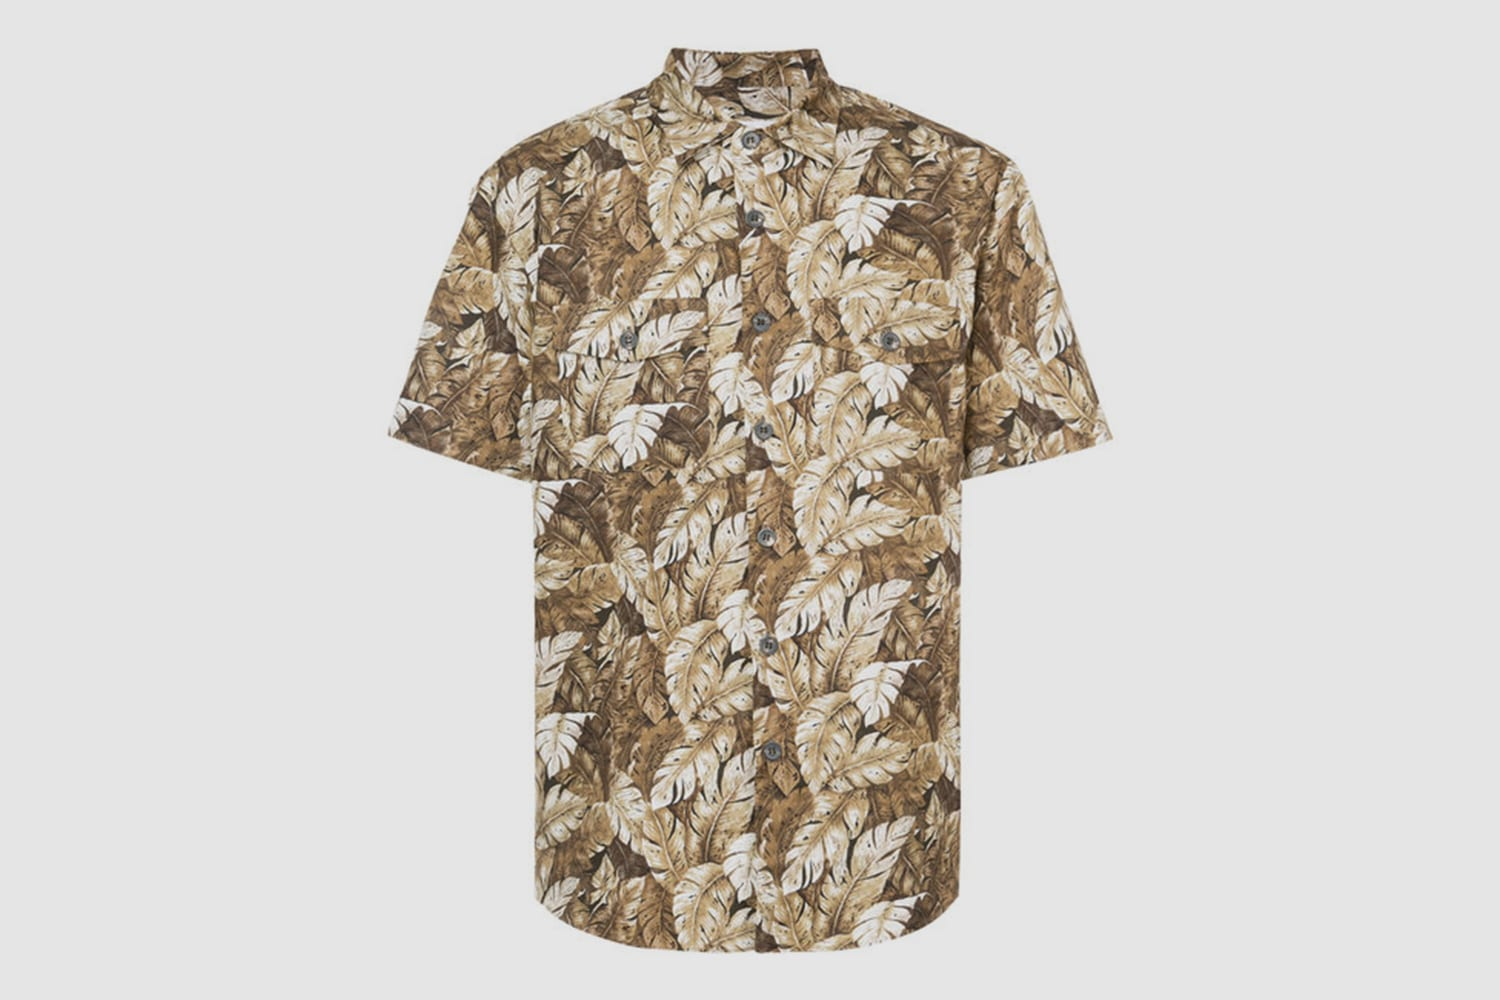 Julien-David-Printed-Shirt